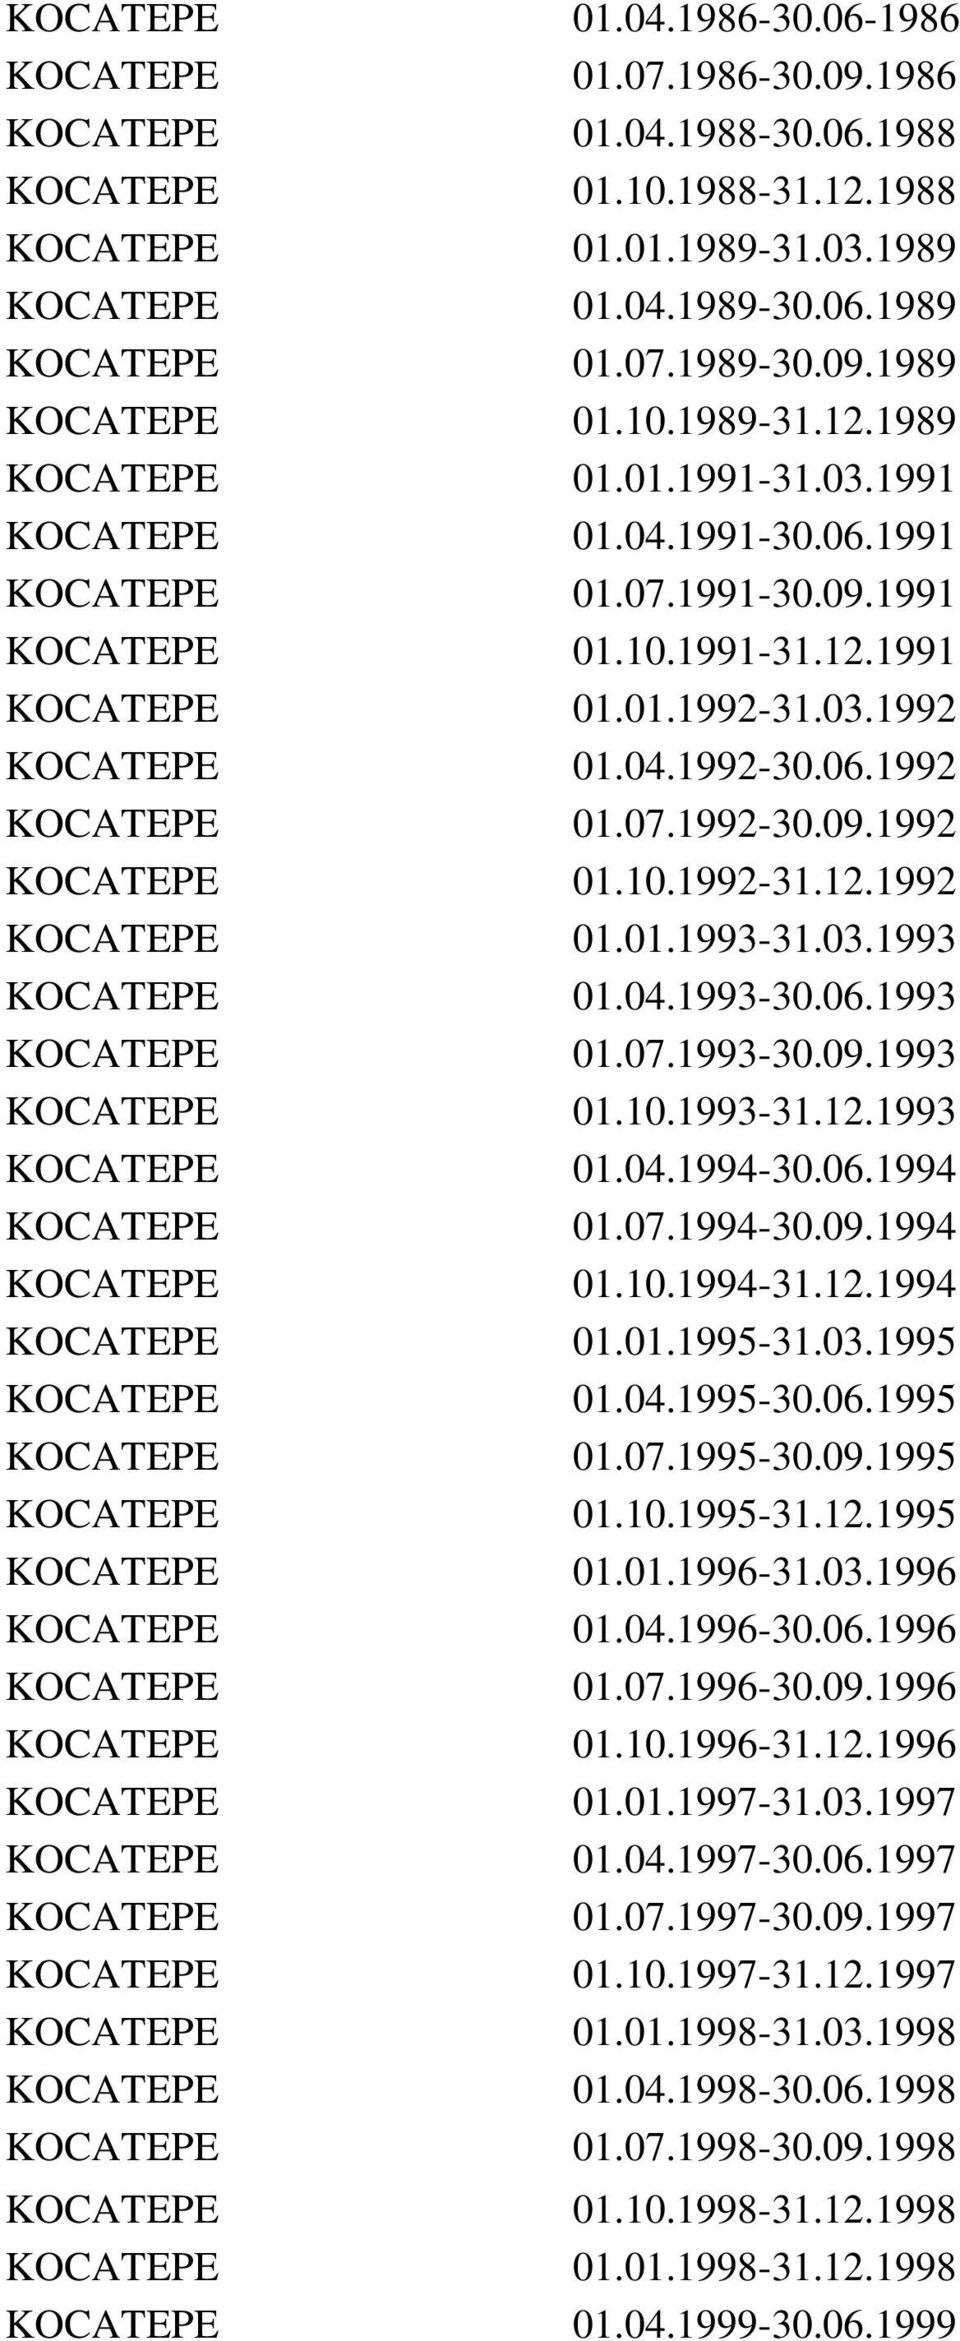 03.1993 KOCATEPE 01.04.1993-30.06.1993 KOCATEPE 01.07.1993-30.09.1993 KOCATEPE 01.10.1993-31.12.1993 KOCATEPE 01.04.1994-30.06.1994 KOCATEPE 01.07.1994-30.09.1994 KOCATEPE 01.10.1994-31.12.1994 KOCATEPE 01.01.1995-31.